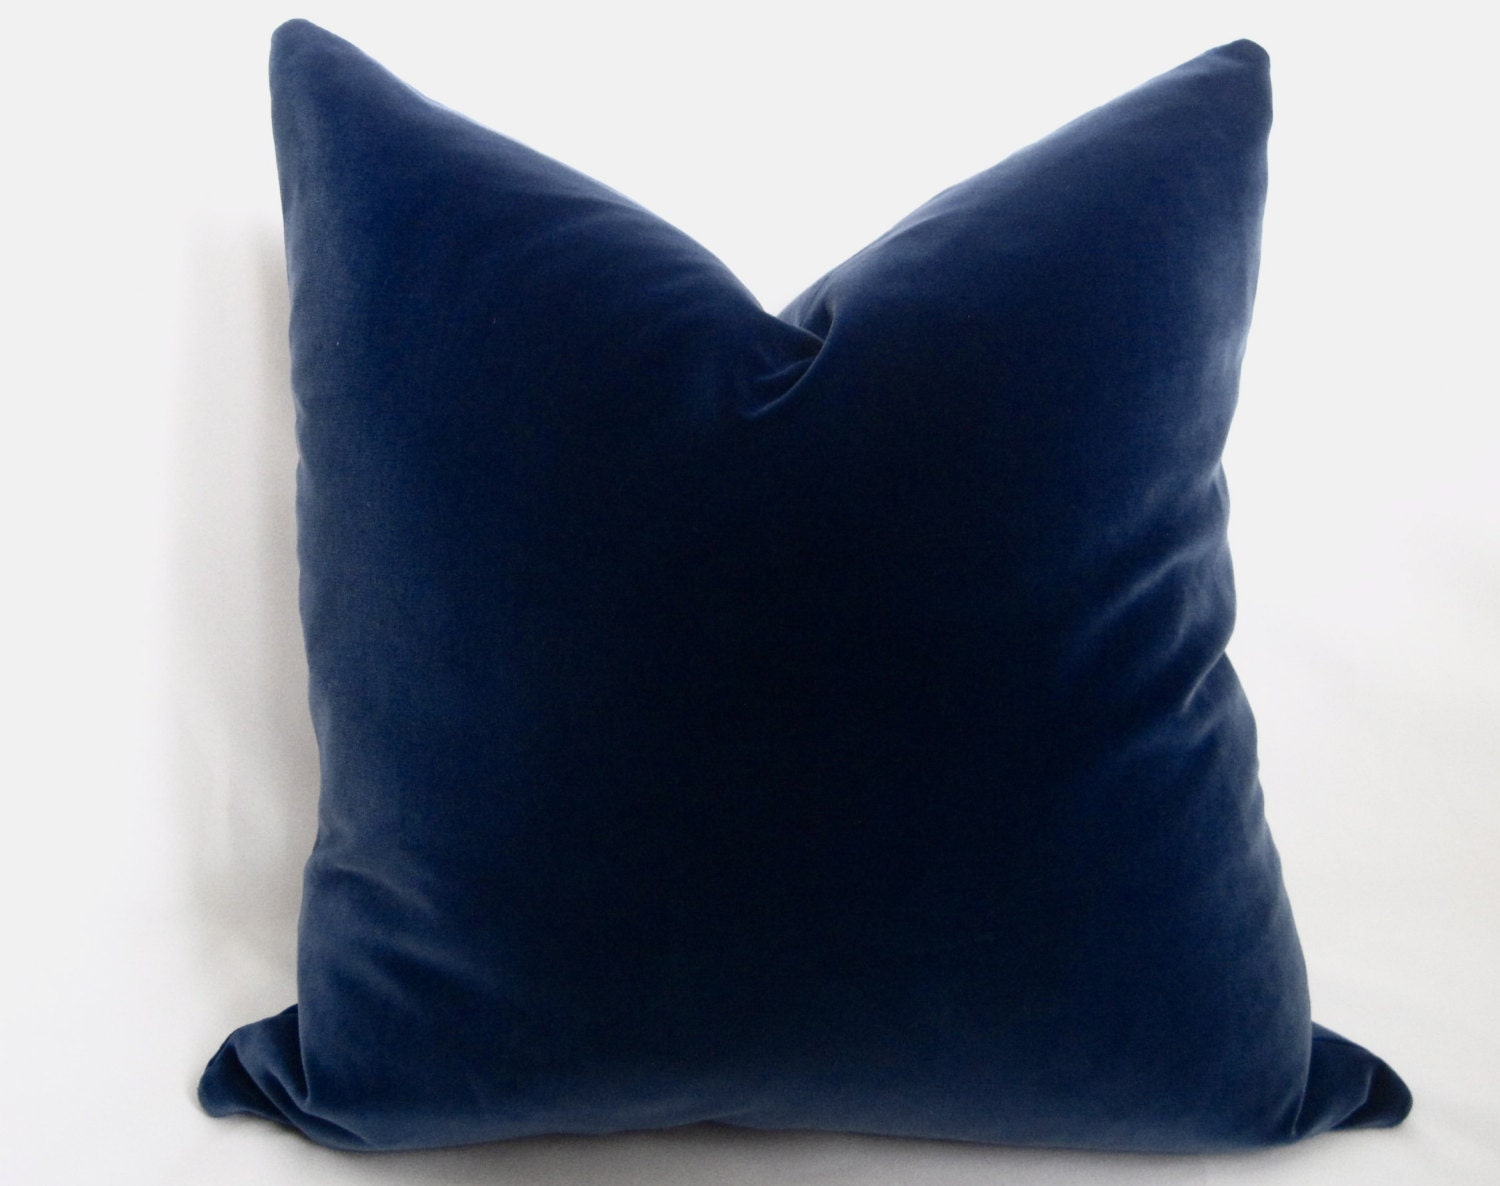 Velvet Decorative Pillow Covers : Cotton Velvet Pillow Cover Midnight Navy Navy by WillaSkyeHome